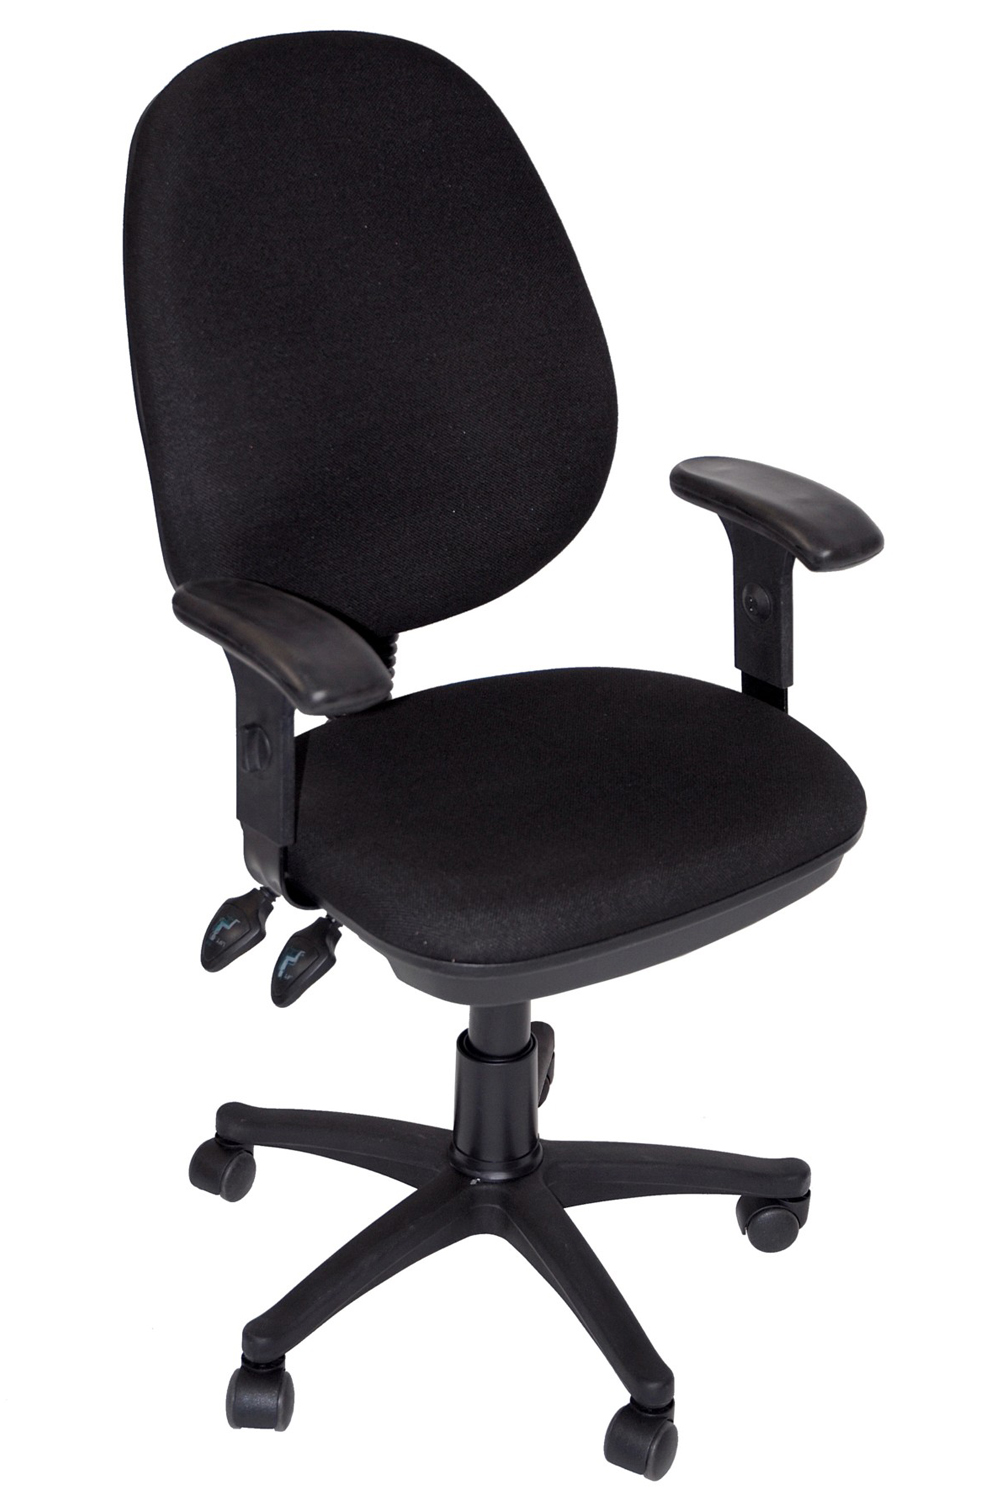 Offex Grandeur Height Adjustable Manager's Desk High Seating Office Chair With Casters